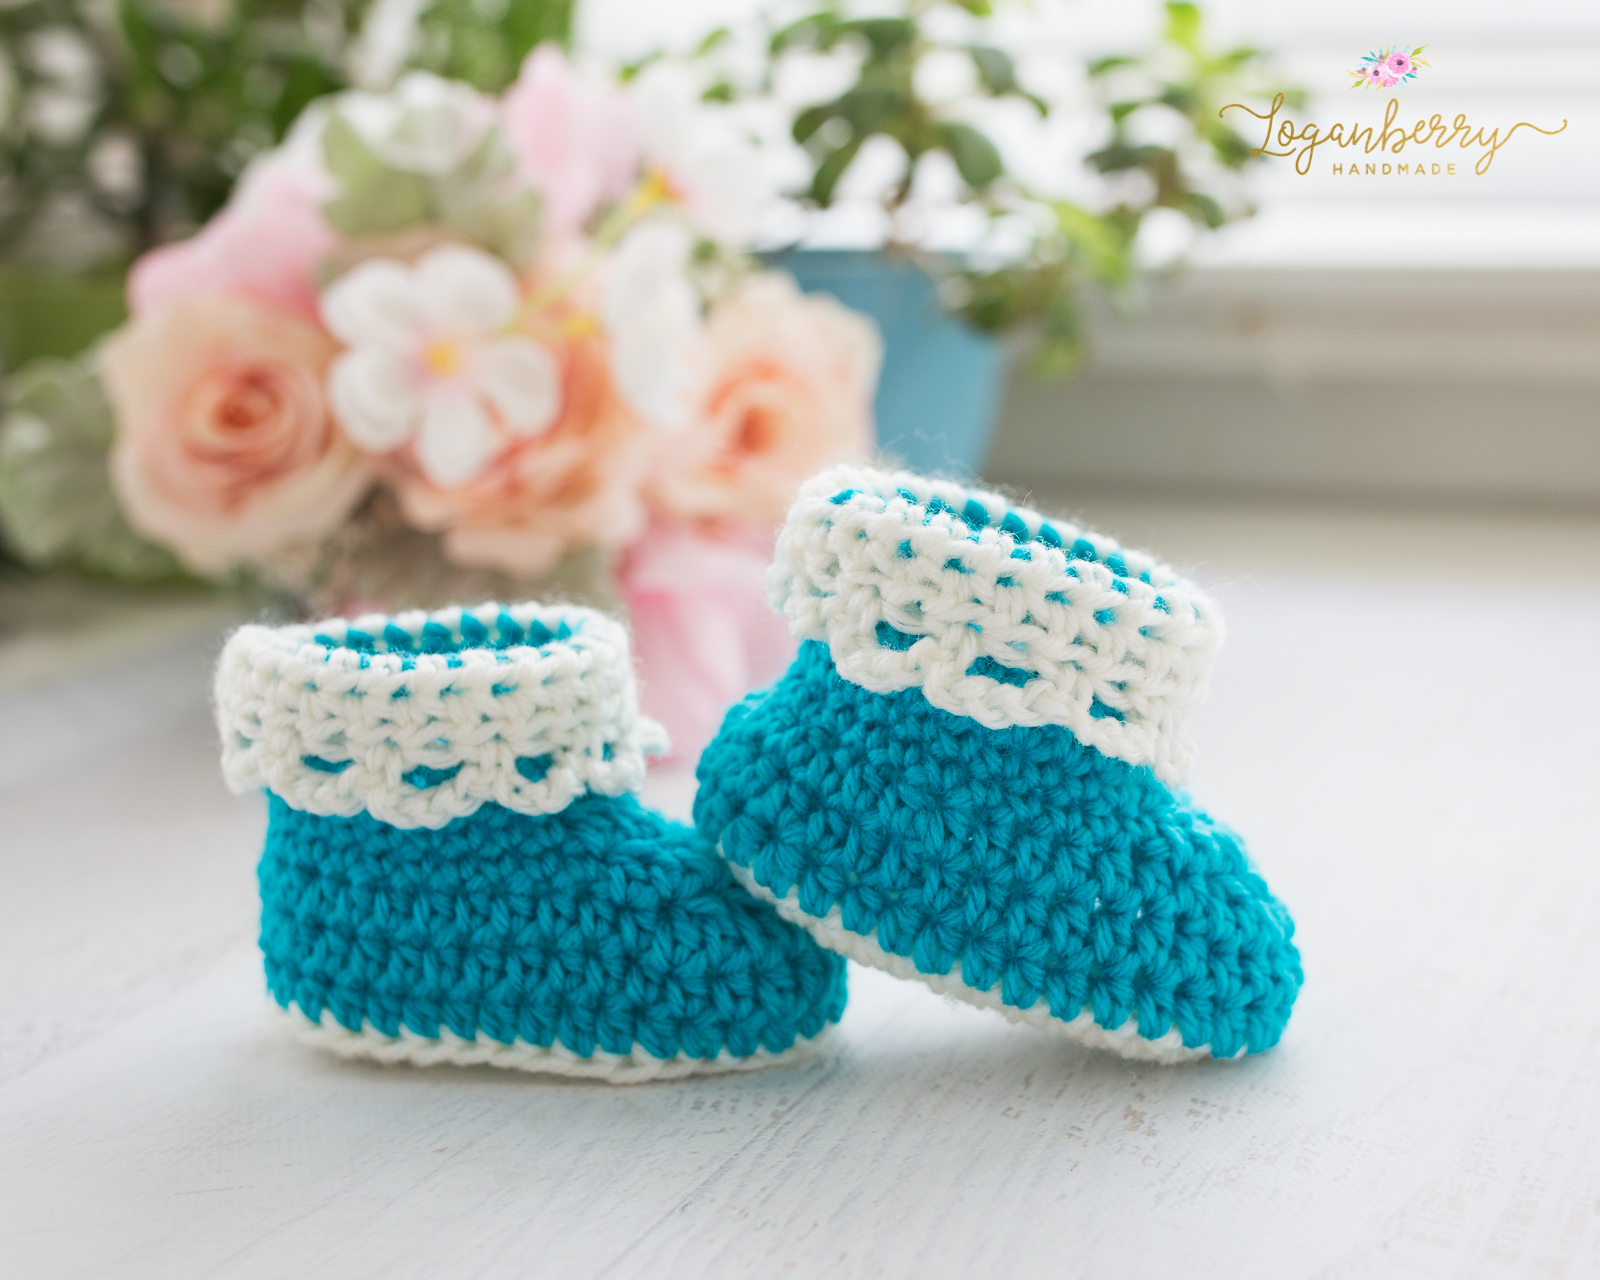 Lace Trim Baby Booties – Free Crochet Pattern Loganberry Handmade